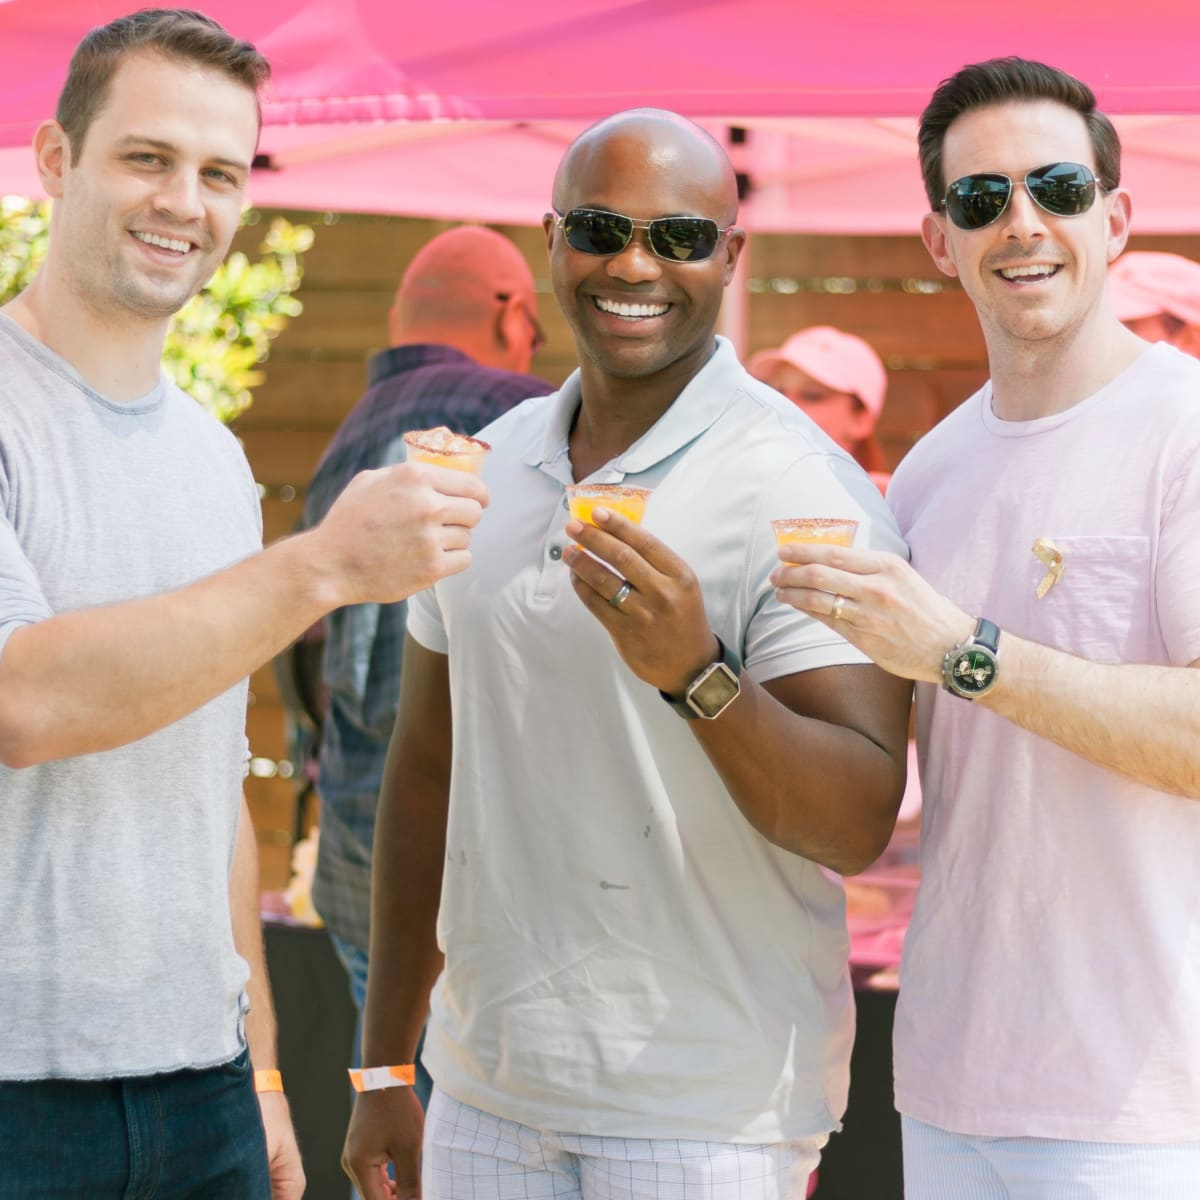 Margarita Taste-off, Jeff Tarpinian, Bryce Beverly, Mike Smith